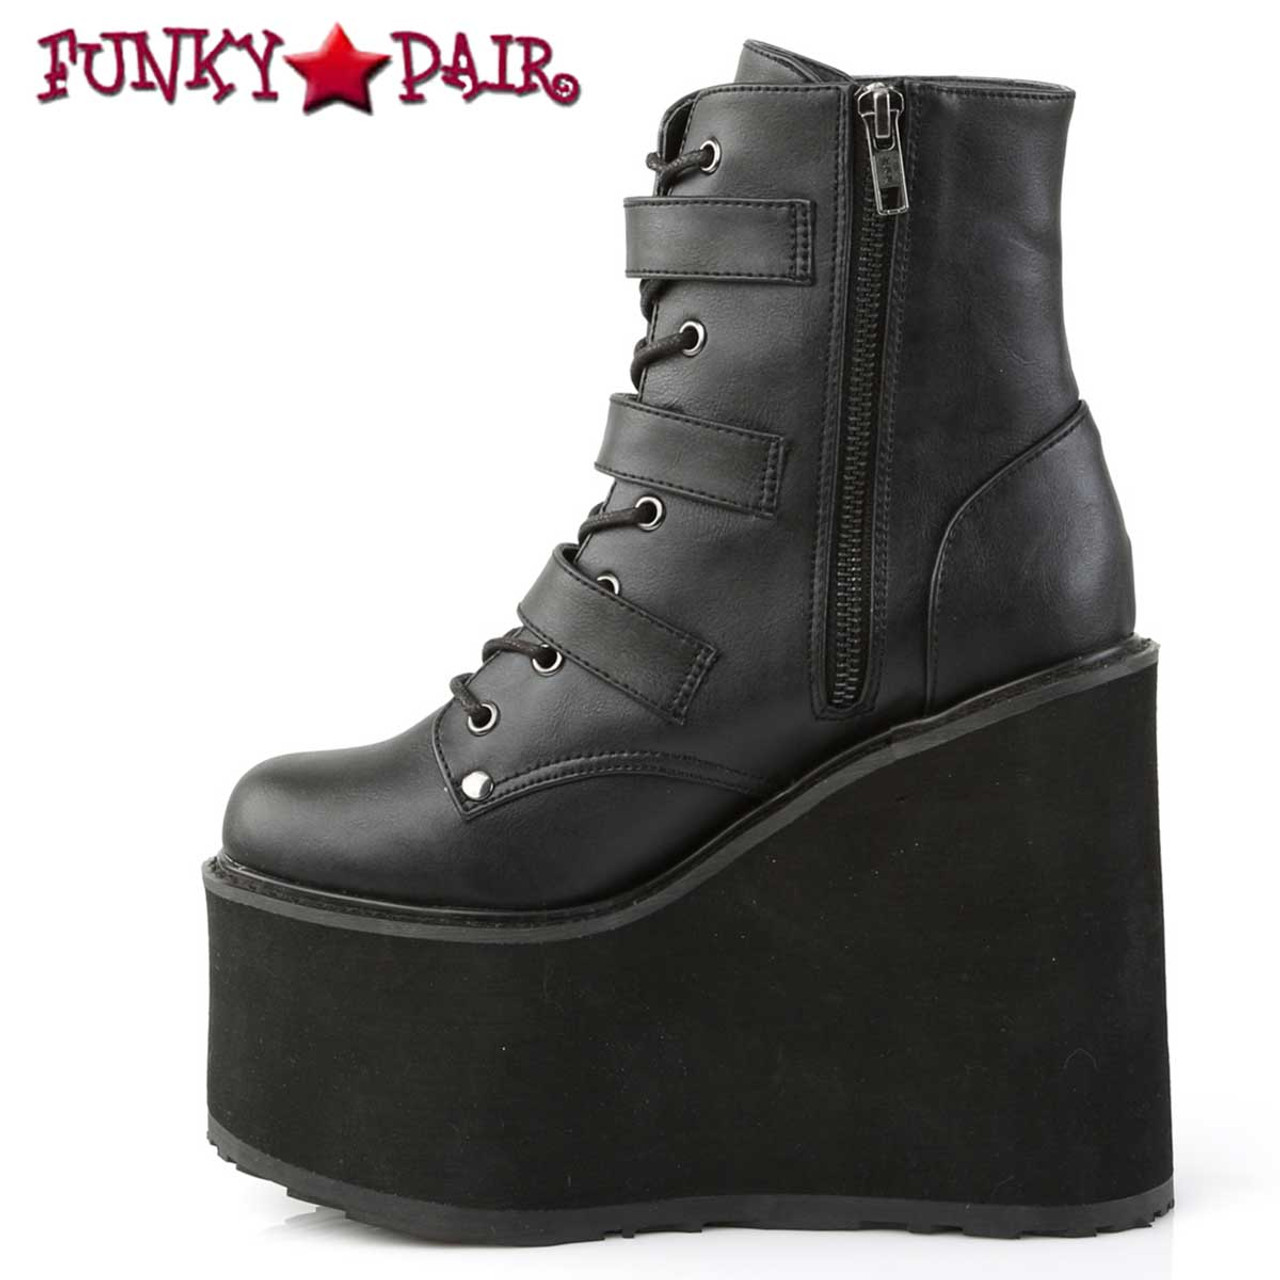 Demonia Womens Swing-105 Ankle-High Boot